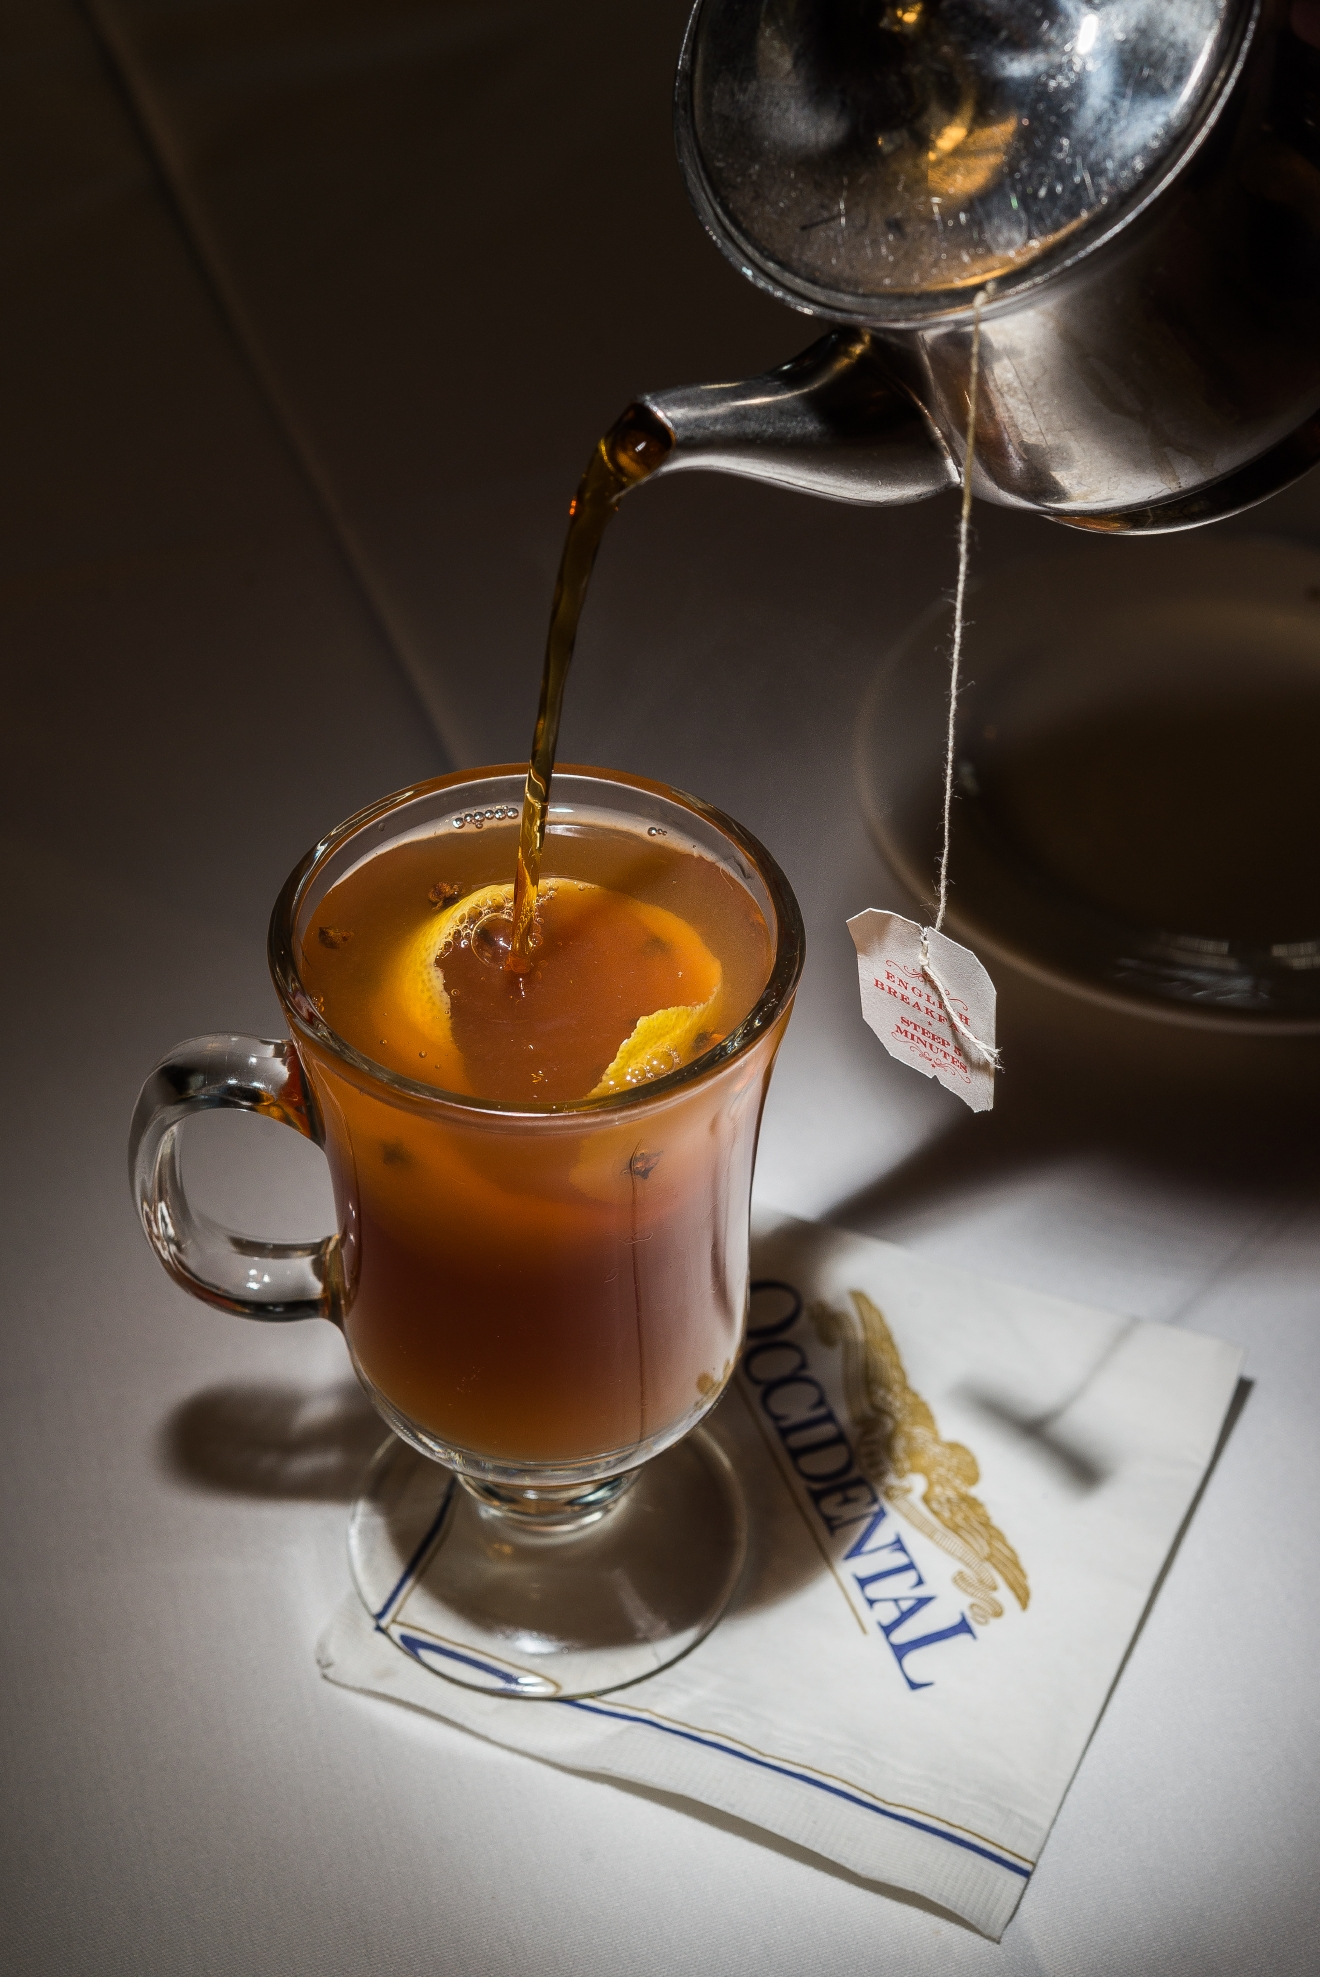 All those made-up food and drink holidays may be a marketing ploy, but Hot Toddy Day (January 11) can't come at a more fitting time. The holidays are over, and the long, cold, depressing winter looms before us. D.C. bartenders are turning up the heat with boozy beverages tricked out with citrus juices, teas, infused spirits, honey and spices that are perfect après-ski or after work. Grab a mug and get steeped! (Image: Rey Lopez)